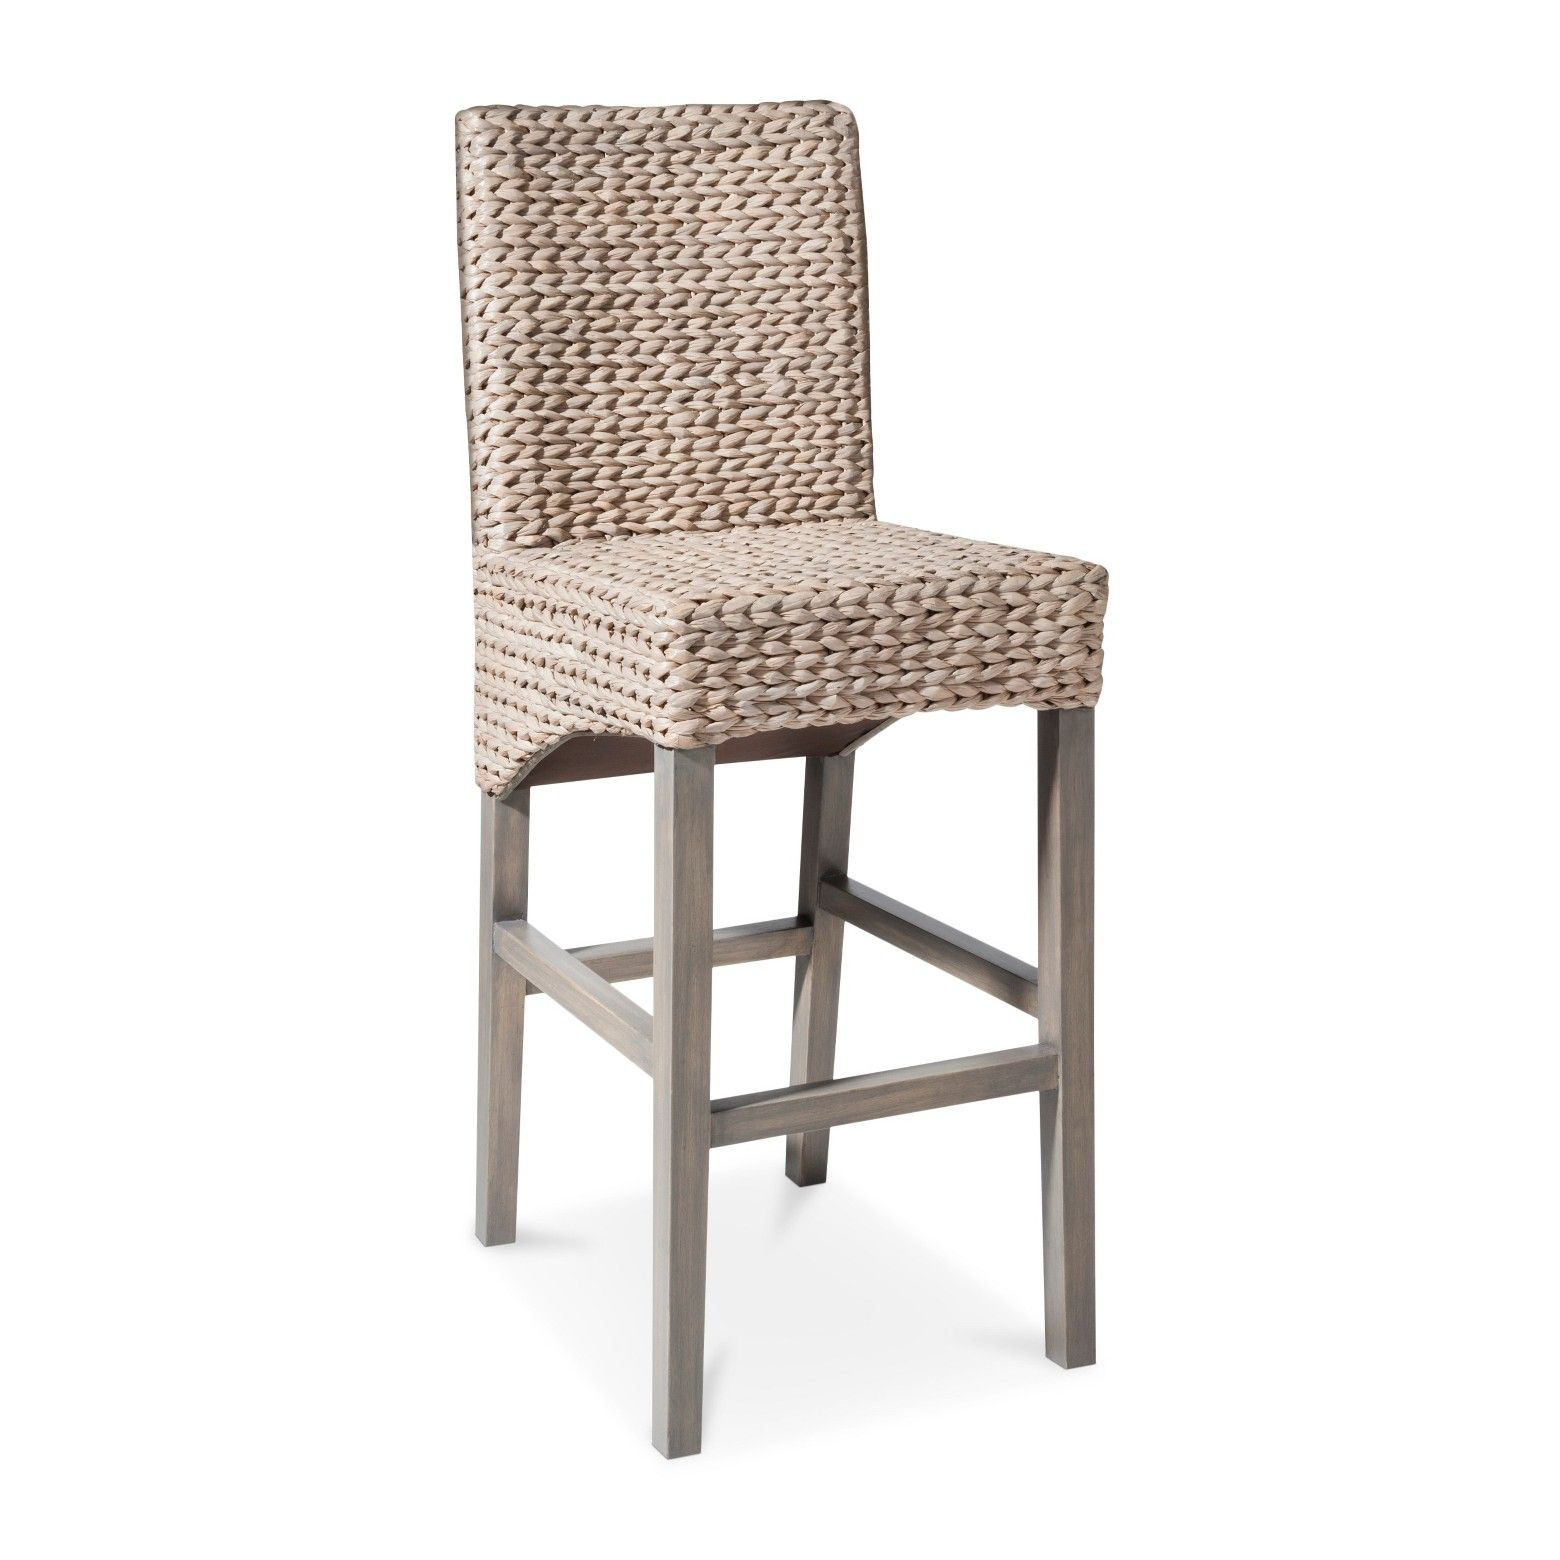 The Andres Seagrass Barstool Grey Gives A Beachy Vibe To